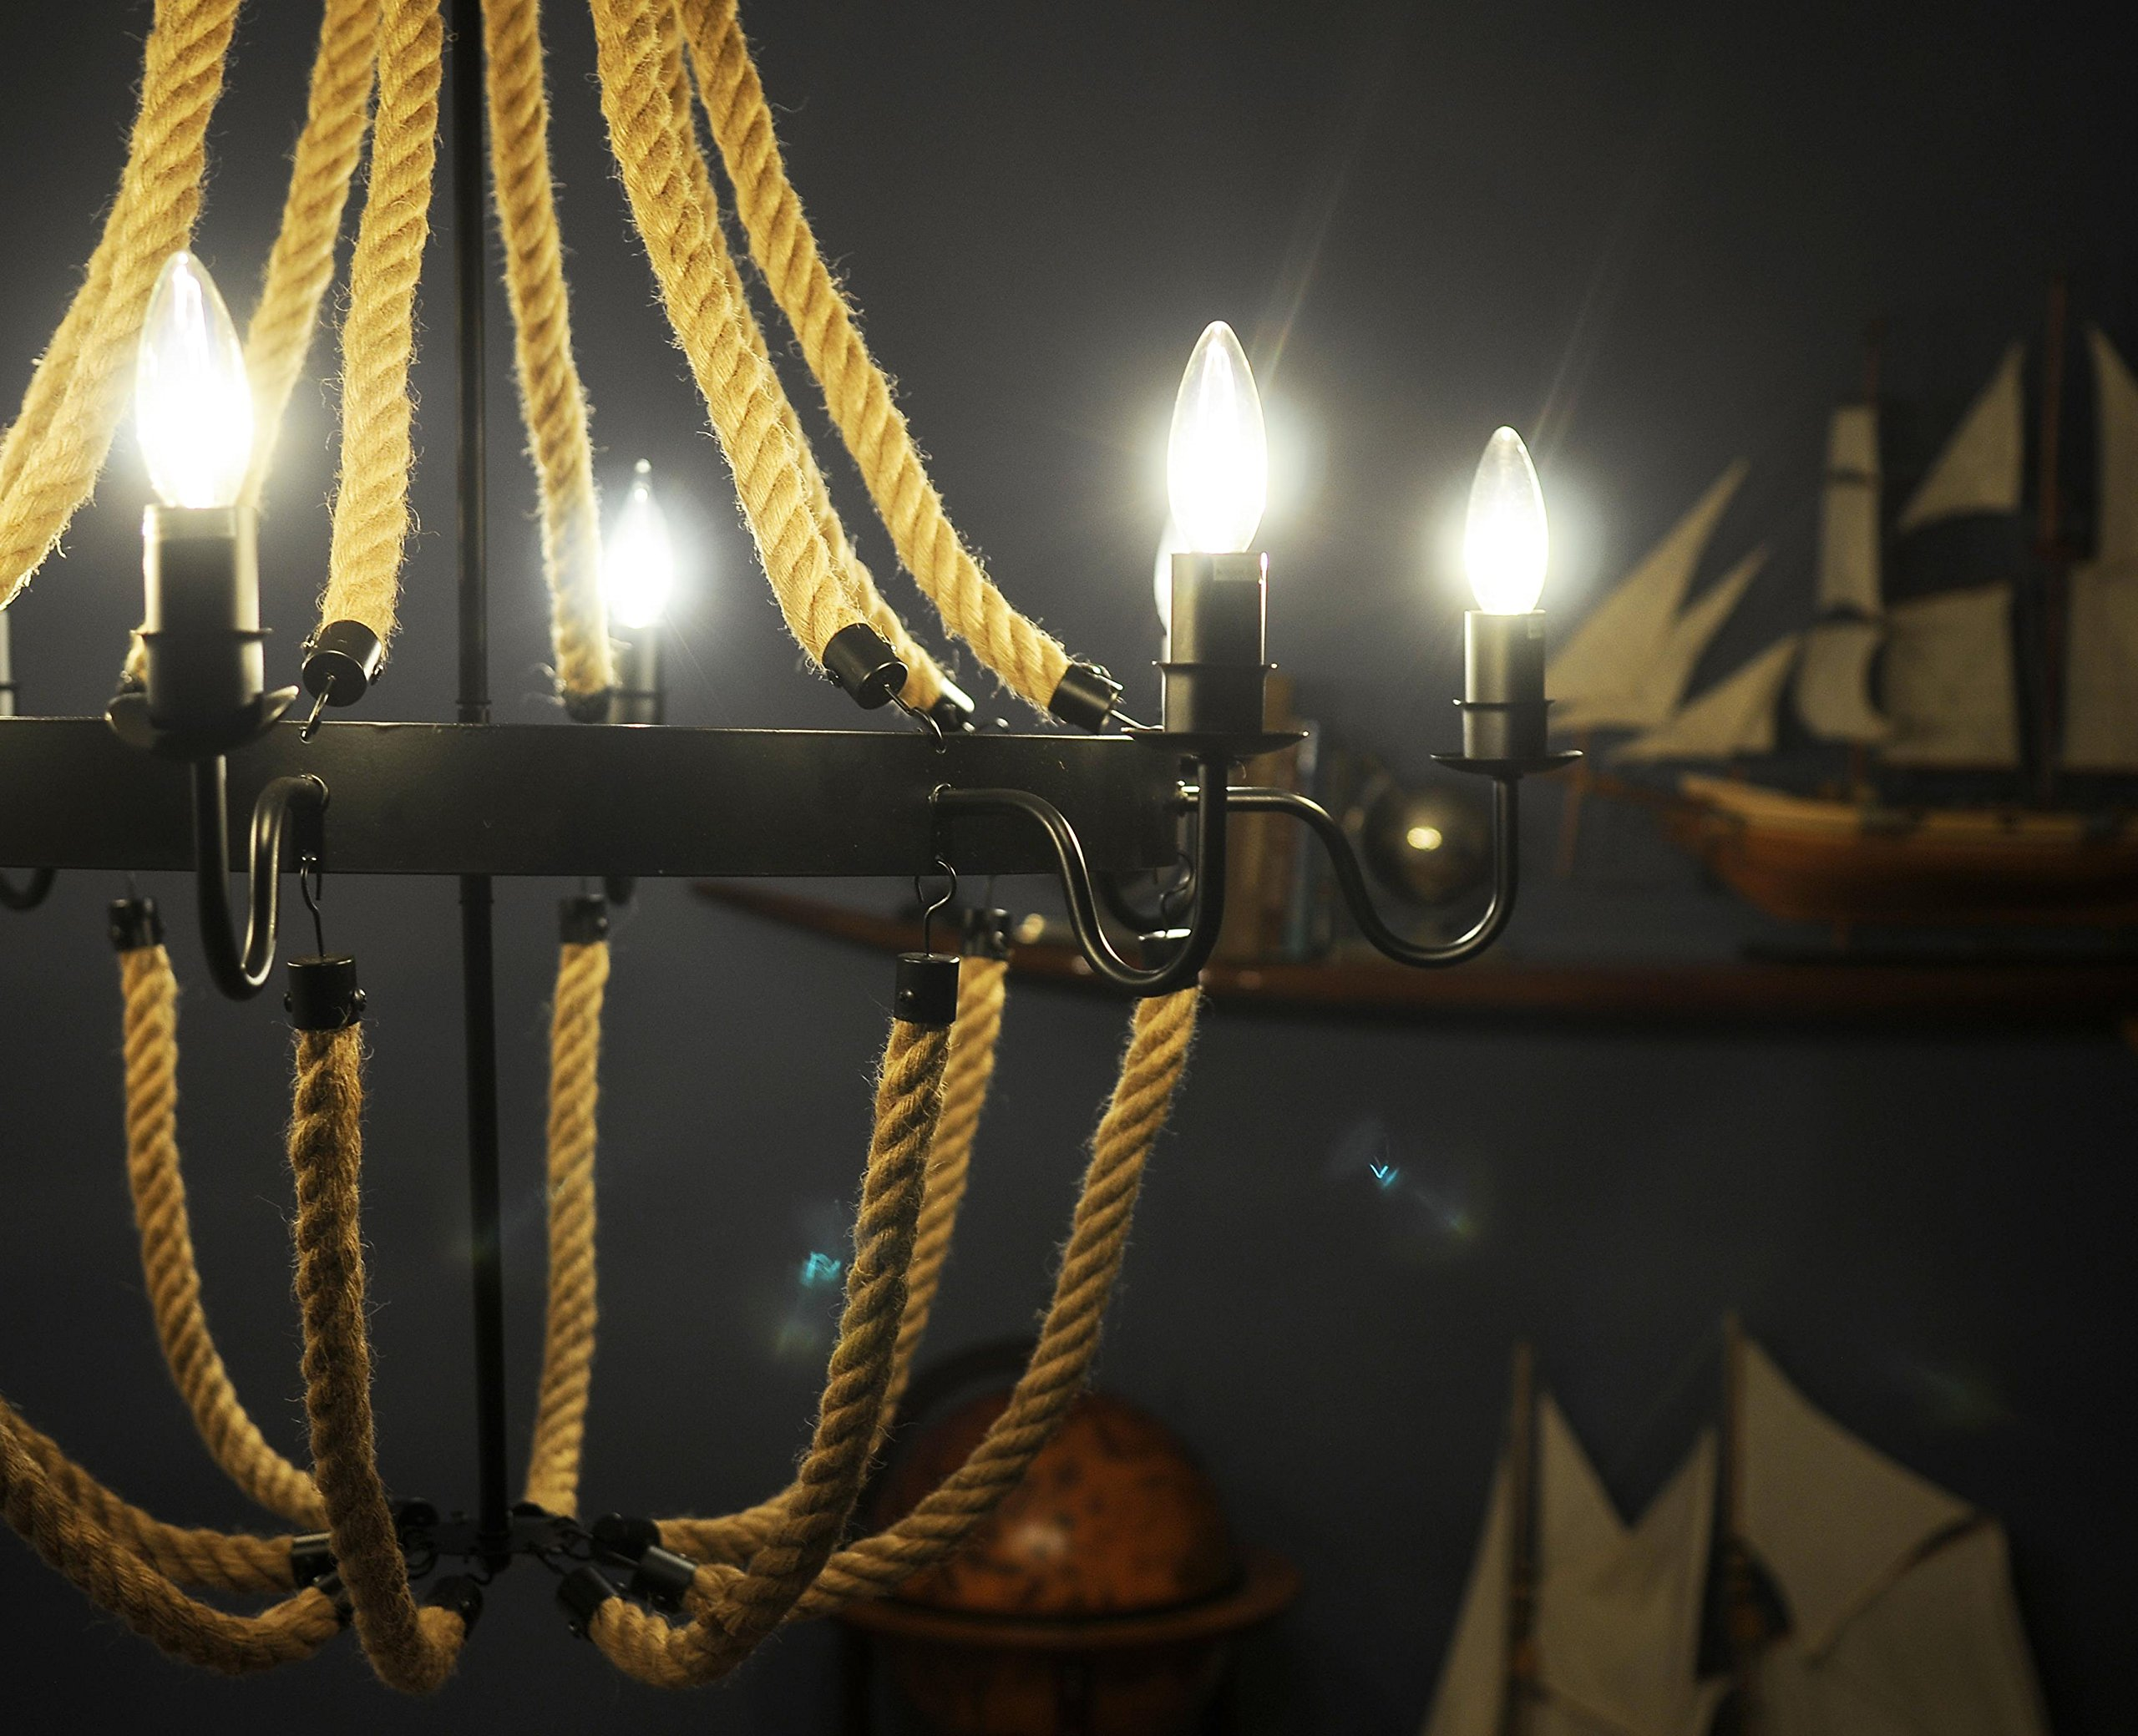 Old Modern Handicrafts Rope Pendant Lamp with 8 Bulbs, Large by Old Modern Handicrafts